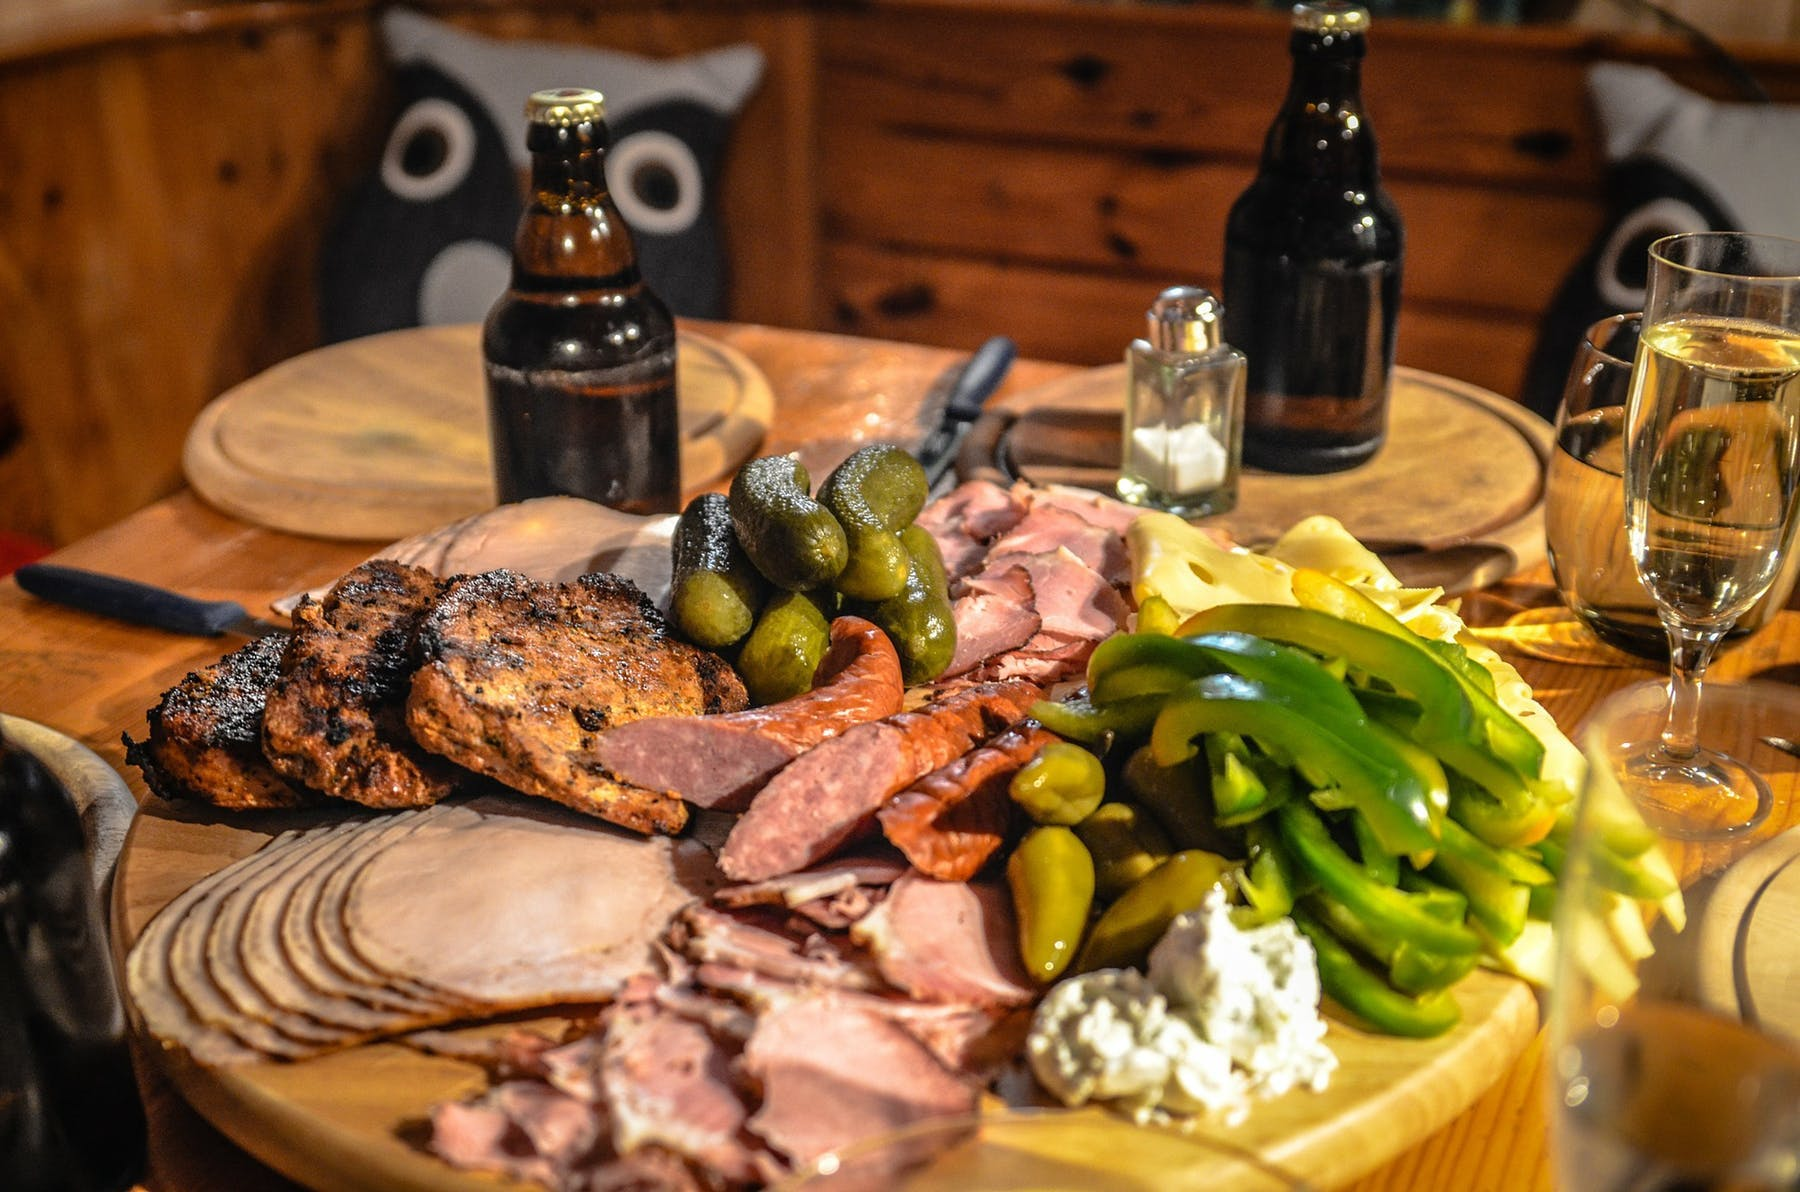 a plate of different types of meat, green pepper, cheese, jalapeño and pickles on a table